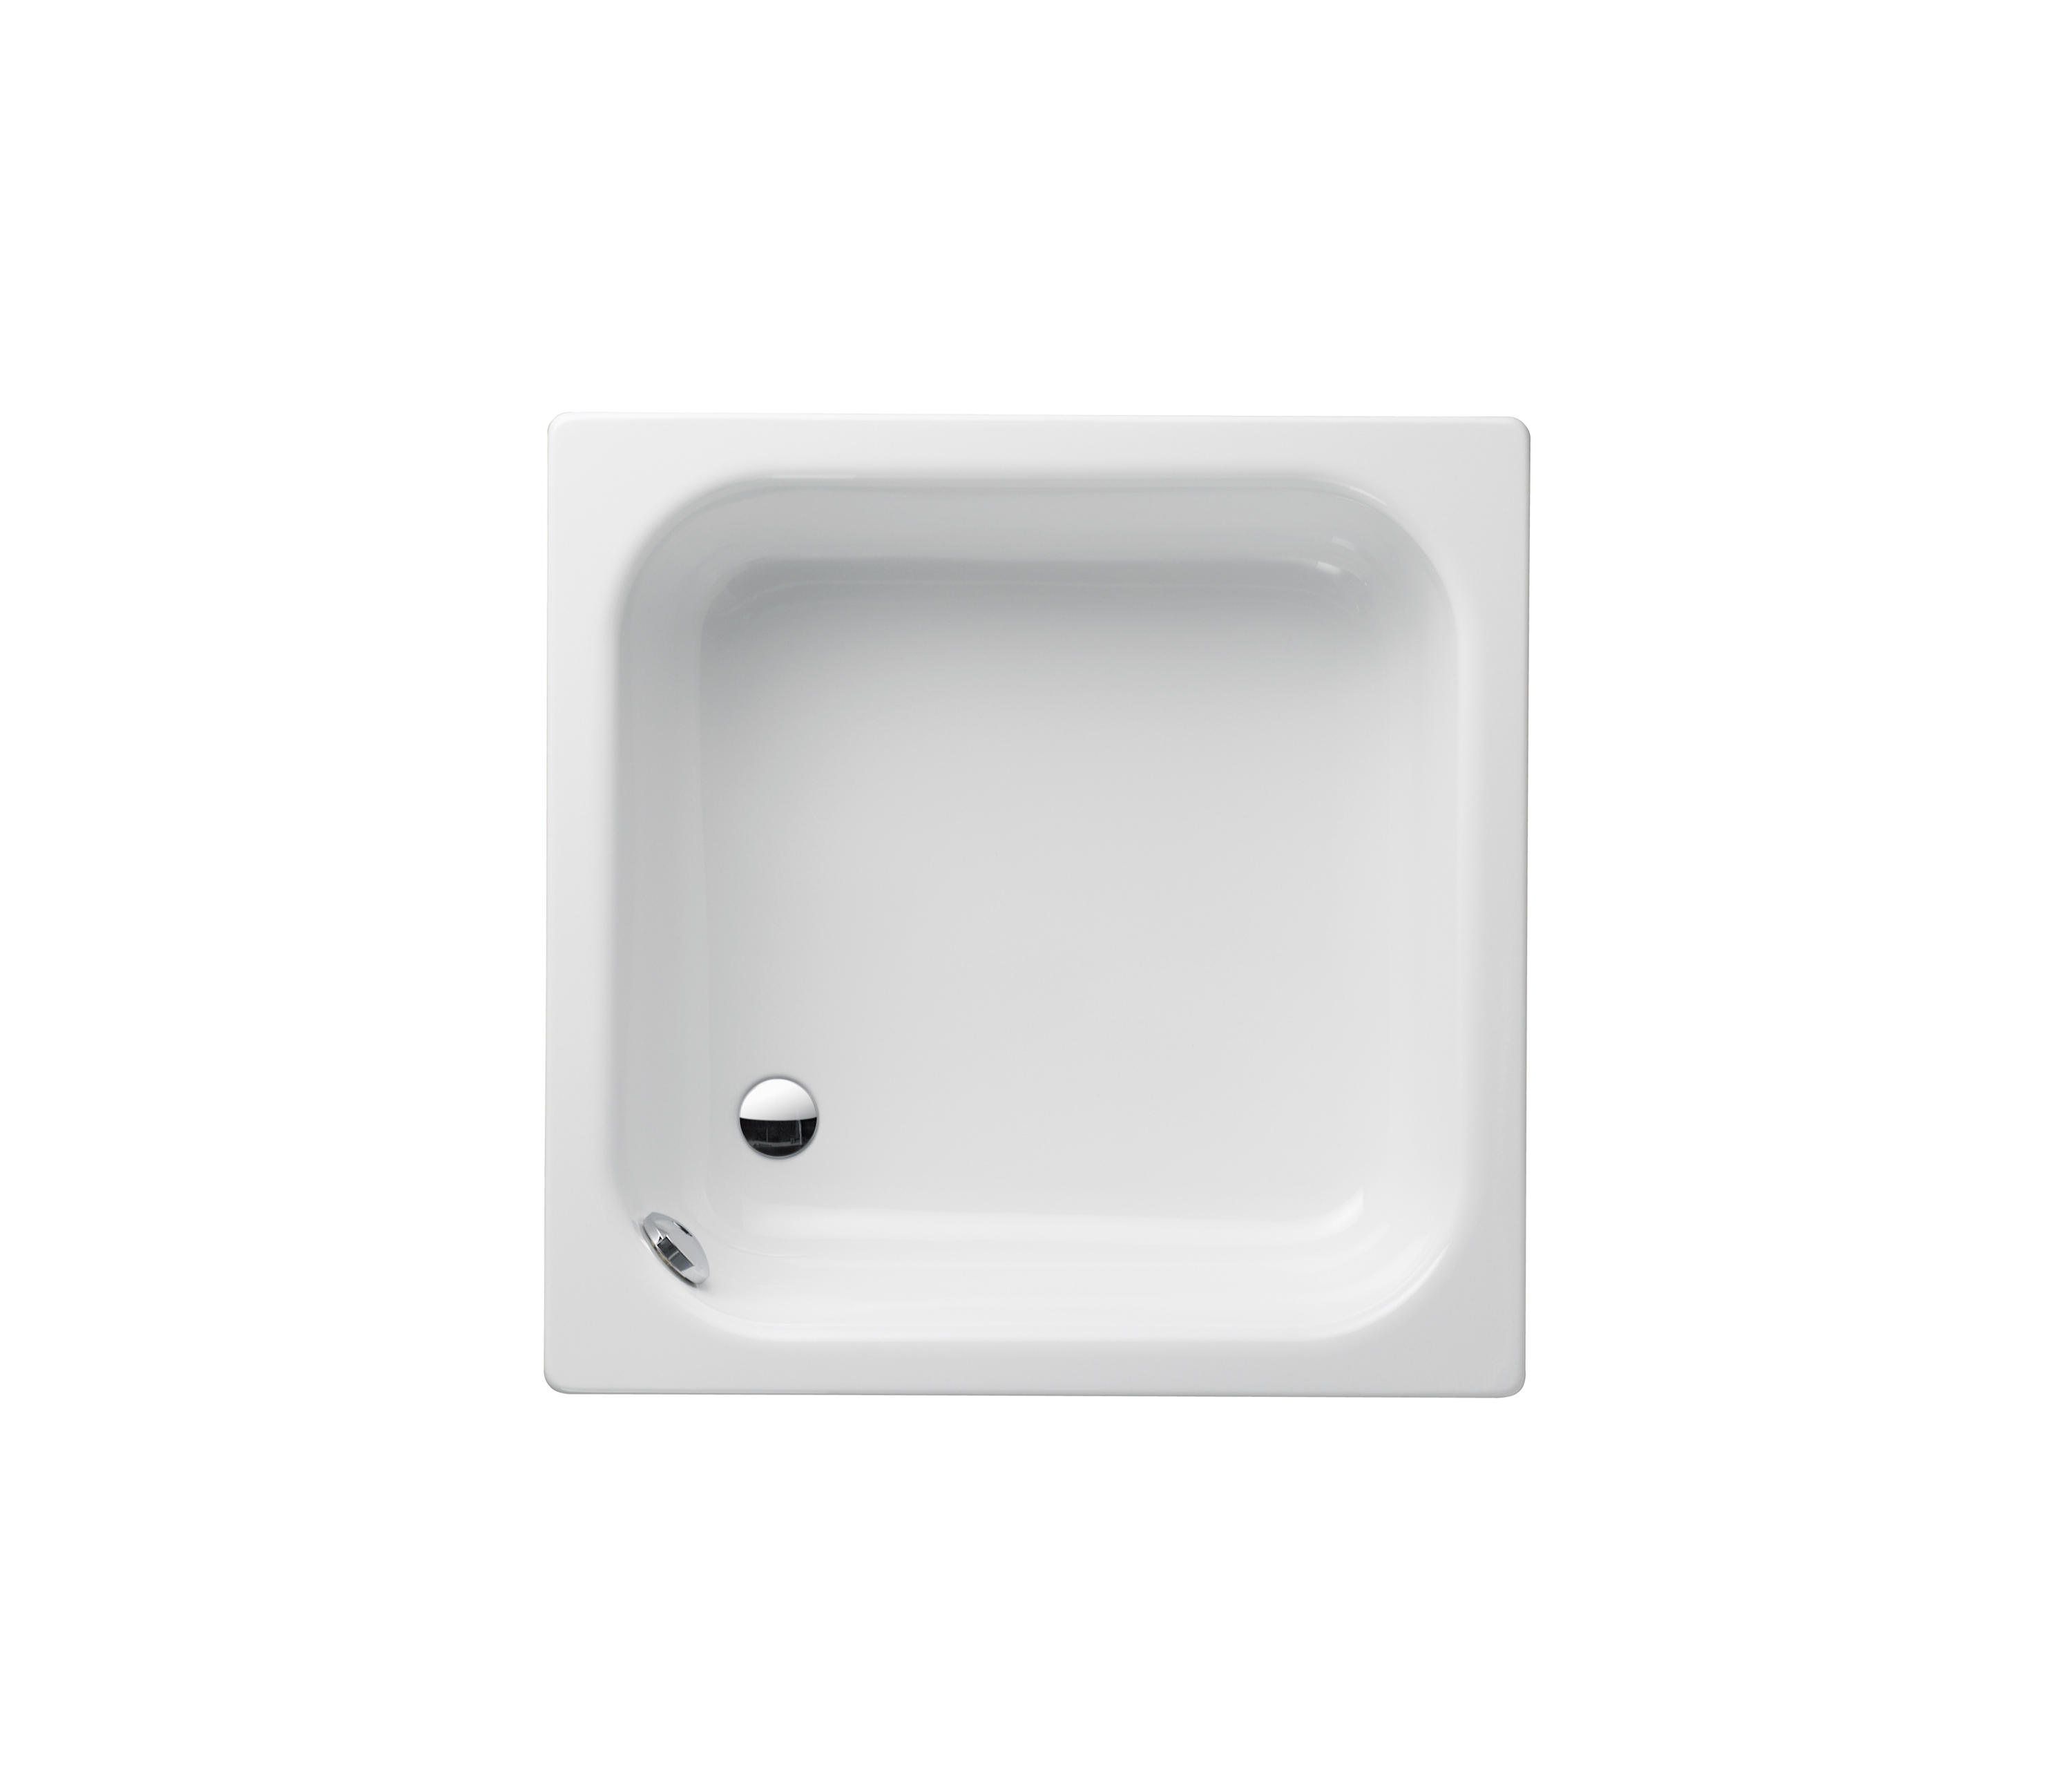 BETTEDELTA - Shower trays from Bette | Architonic